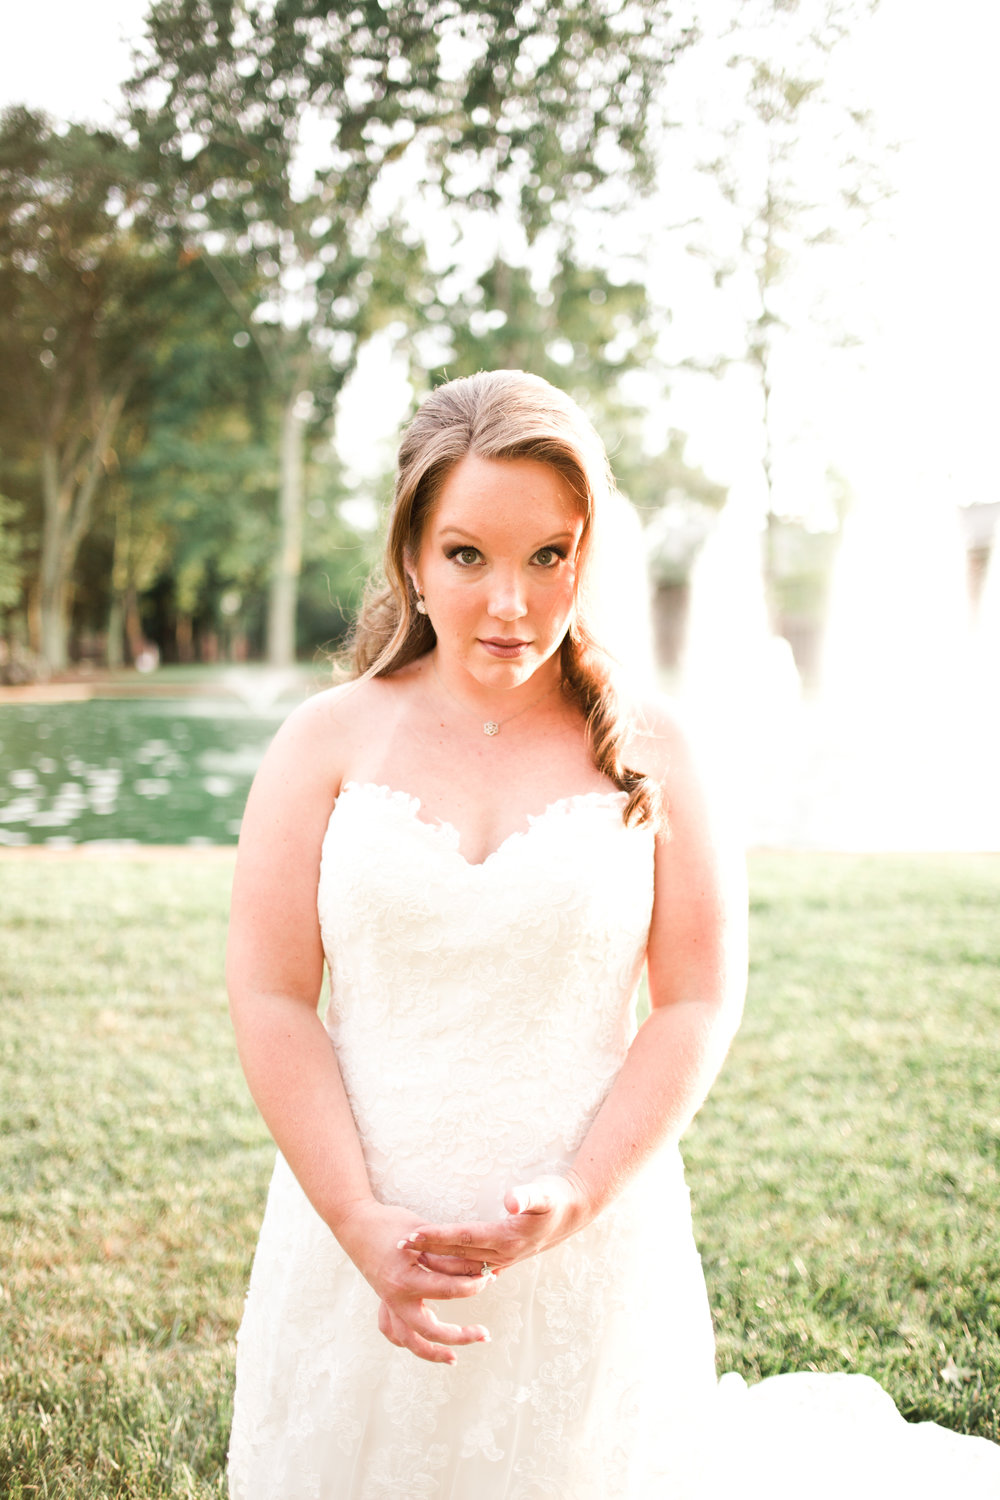 gabbie_bridal_poured_out_photography-67.jpg